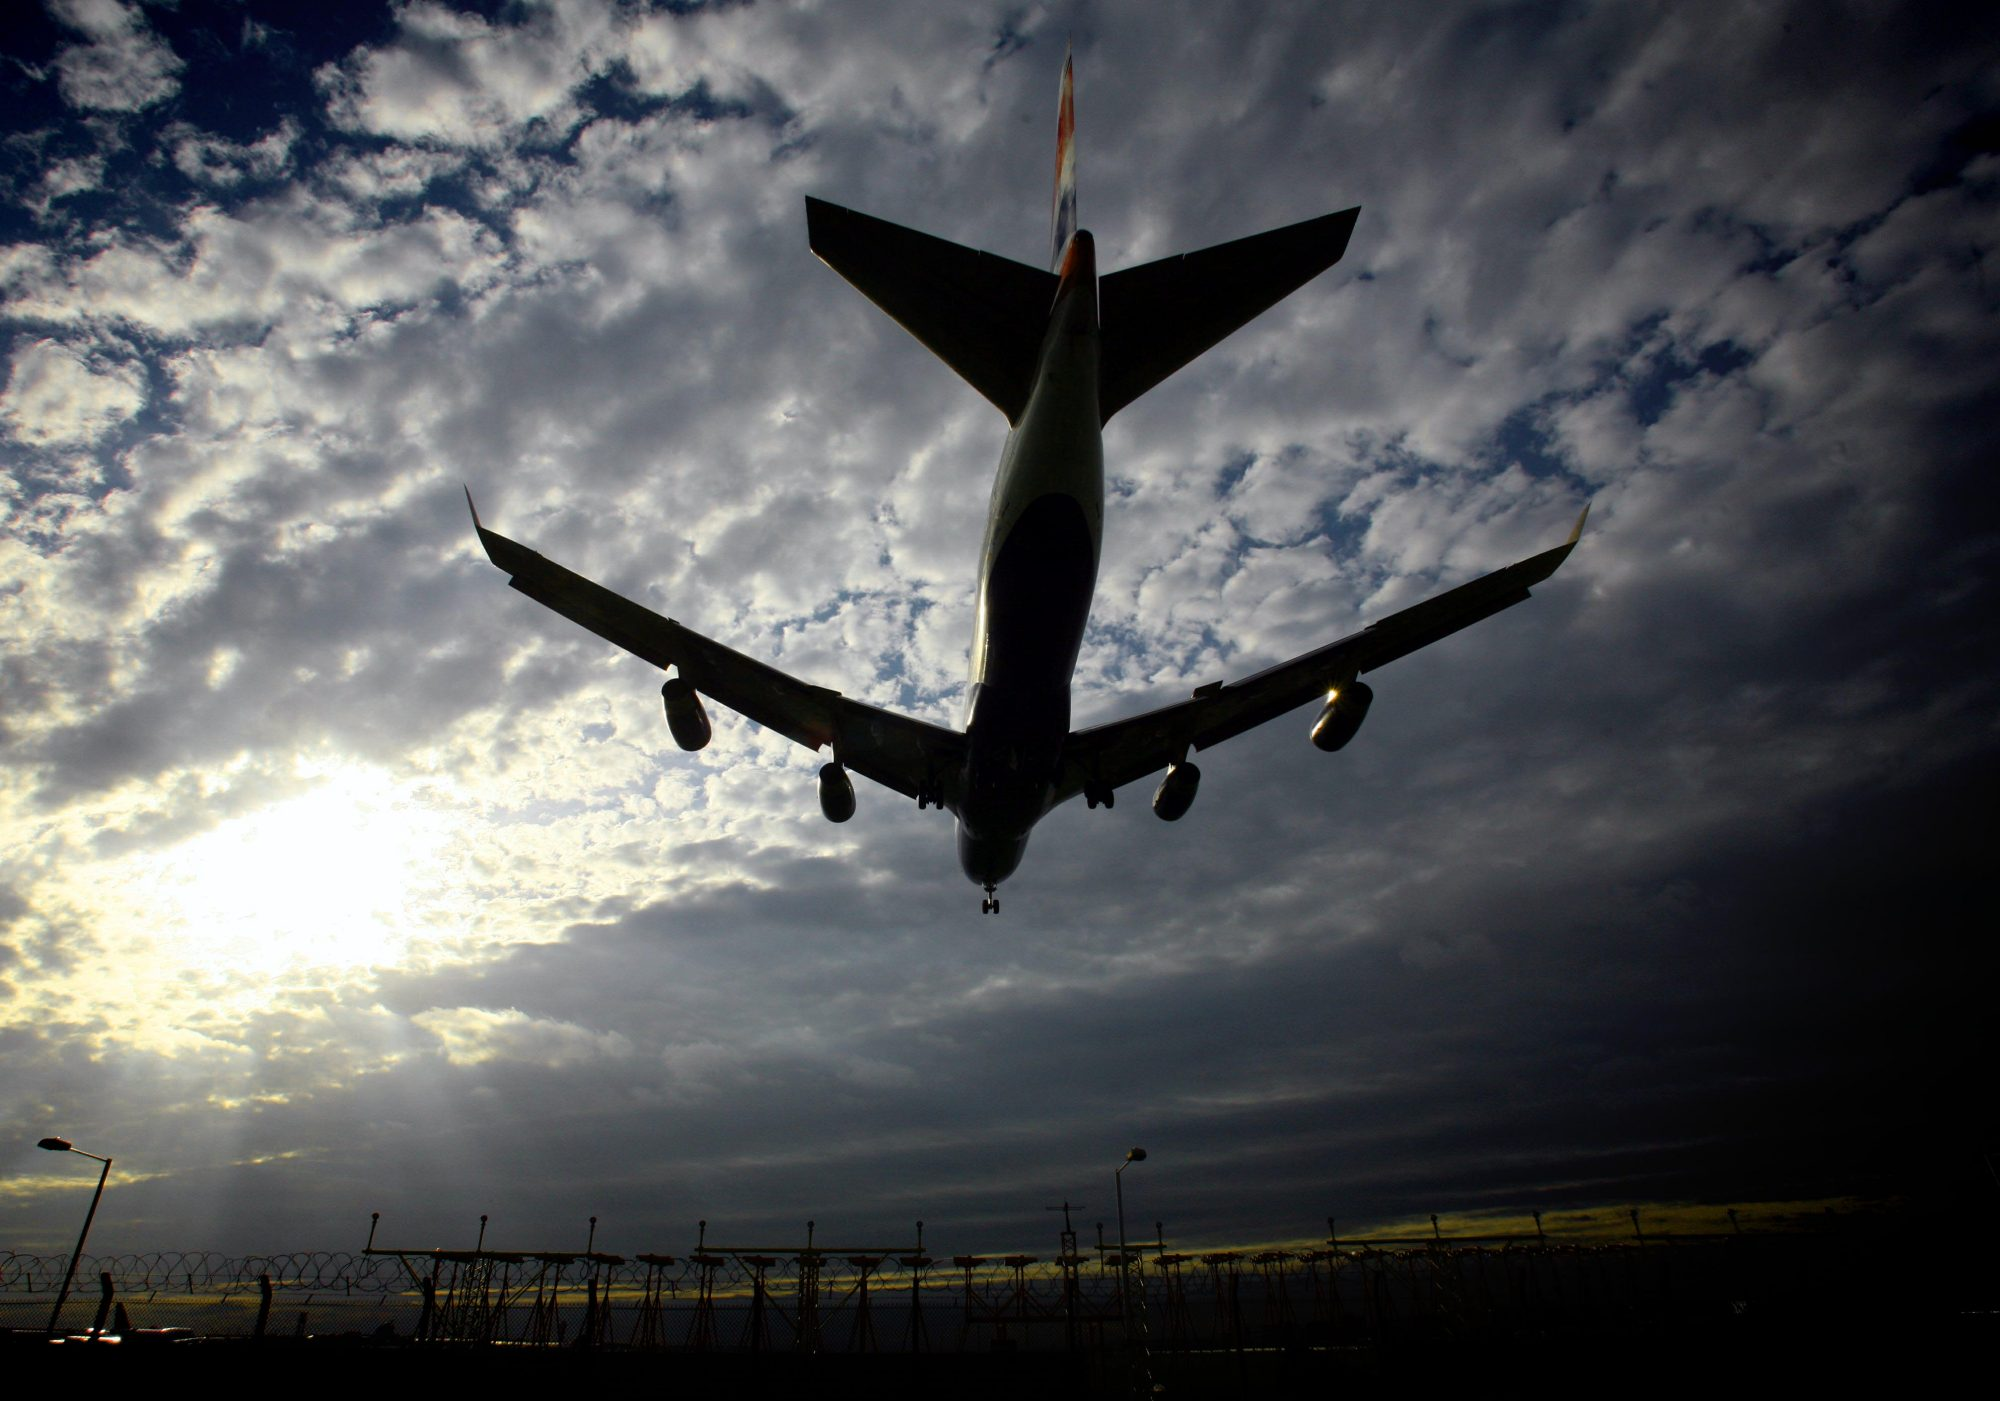 Environmentalists Focus On Impact Of Air Travel